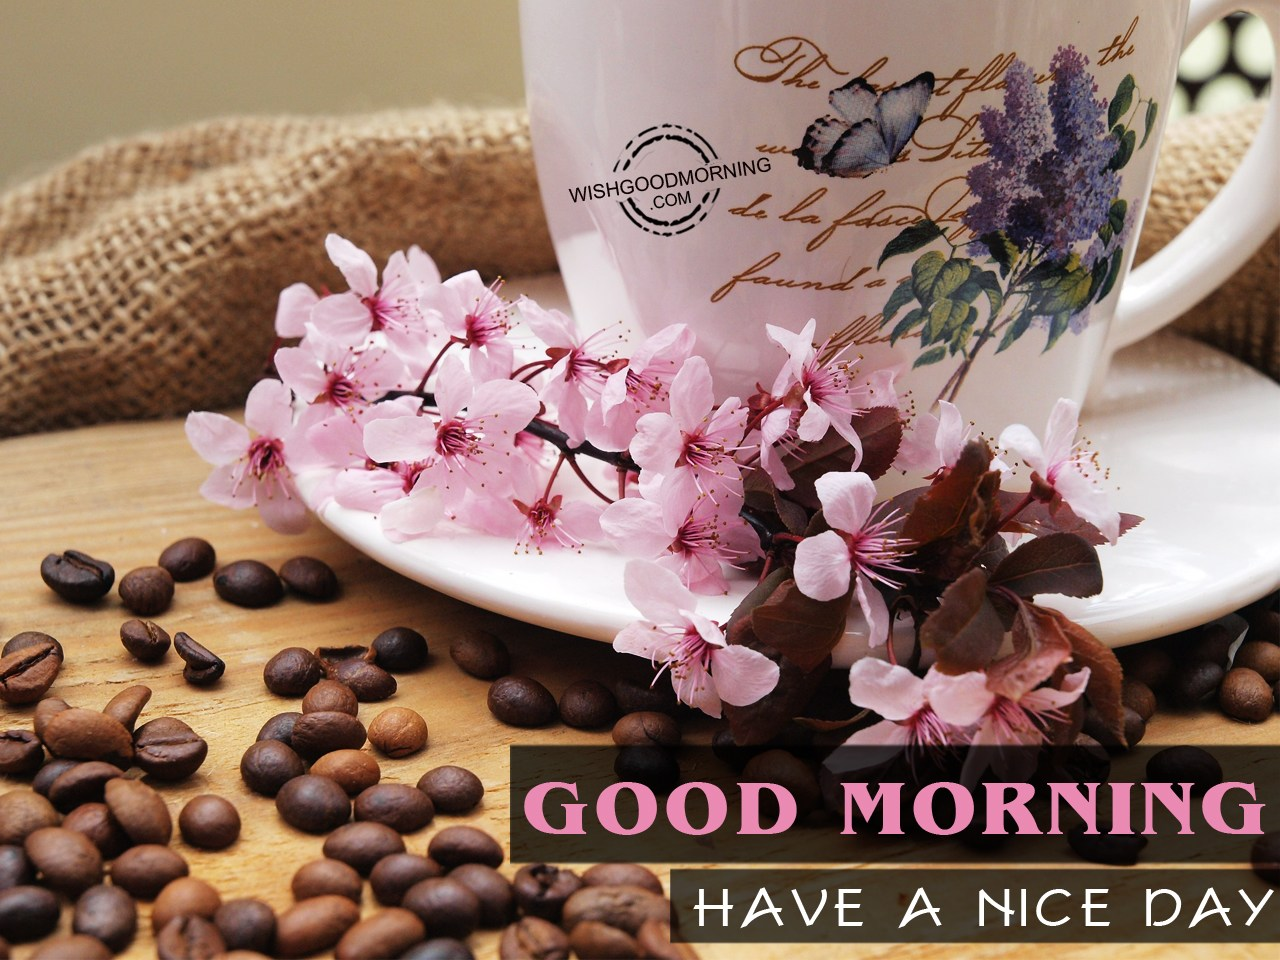 Good Morning Have A Great Day : Good morning pictures wishgoodmorning